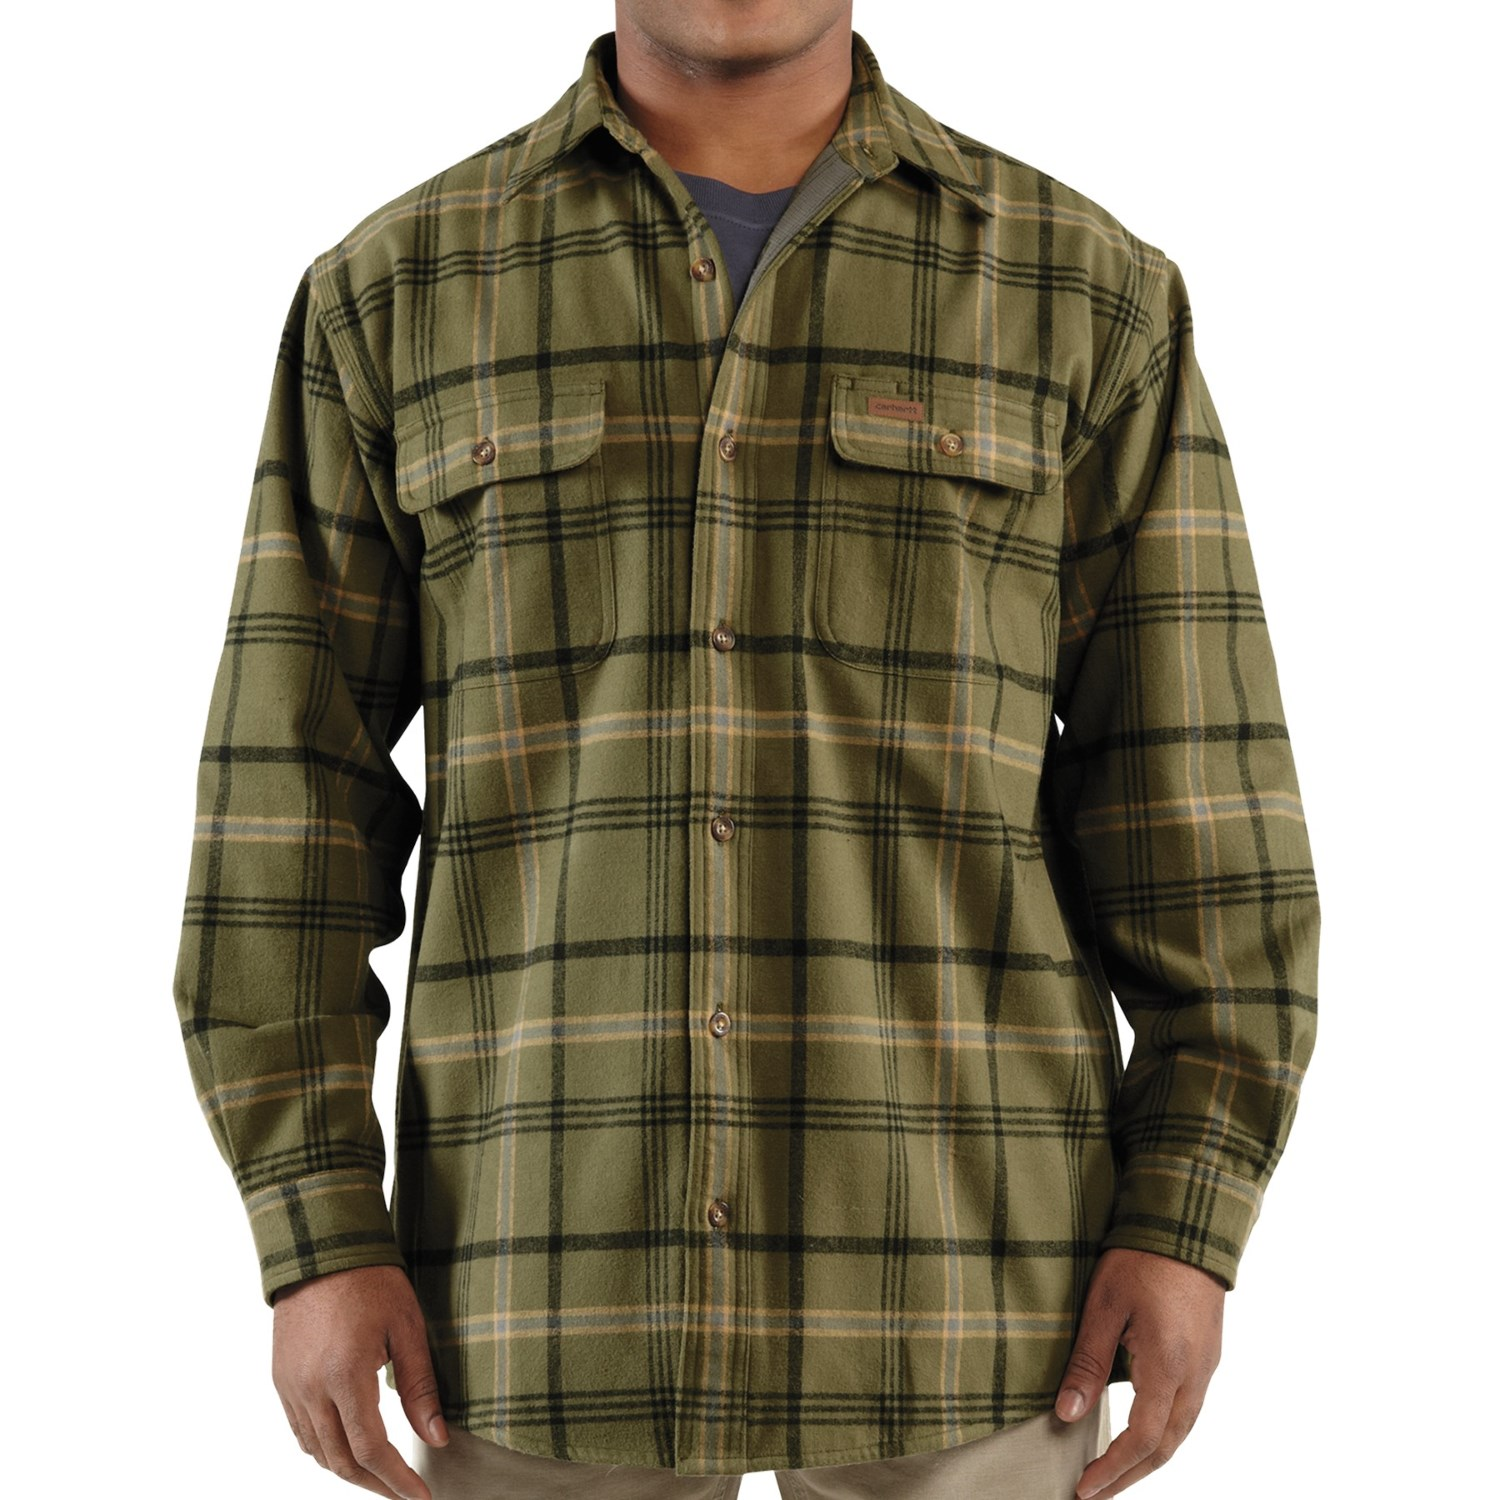 Similiar Flannel Shirt Jackets For Men Keywords